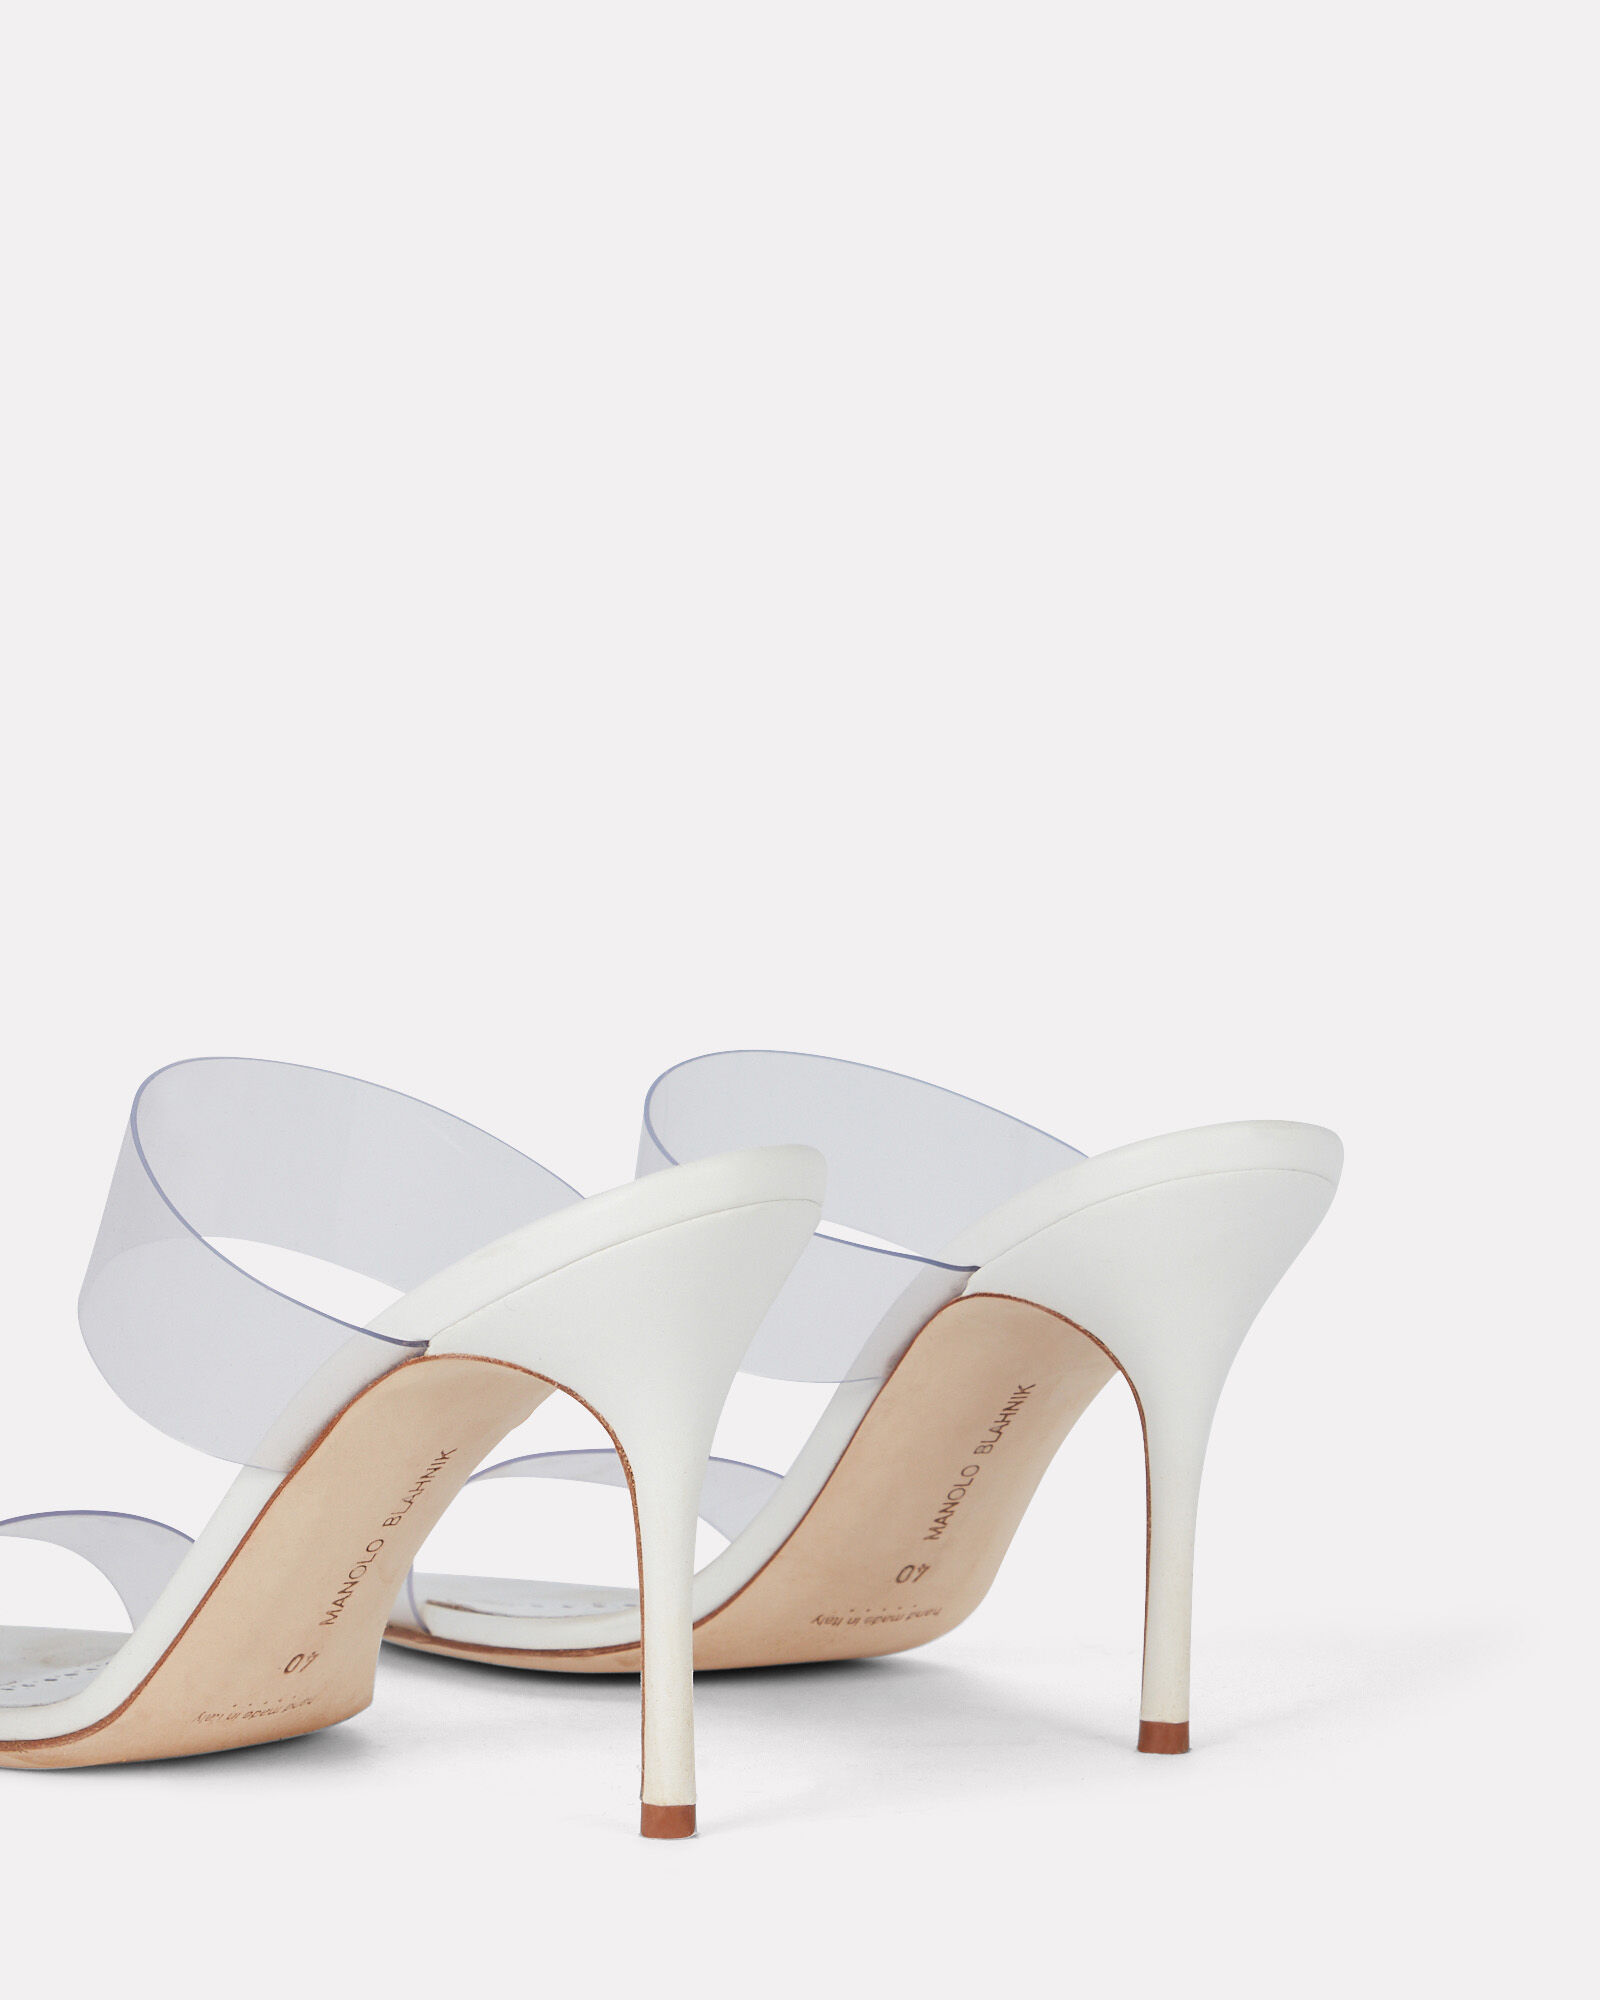 Scolto PVC Strap Sandals, WHITE, hi-res